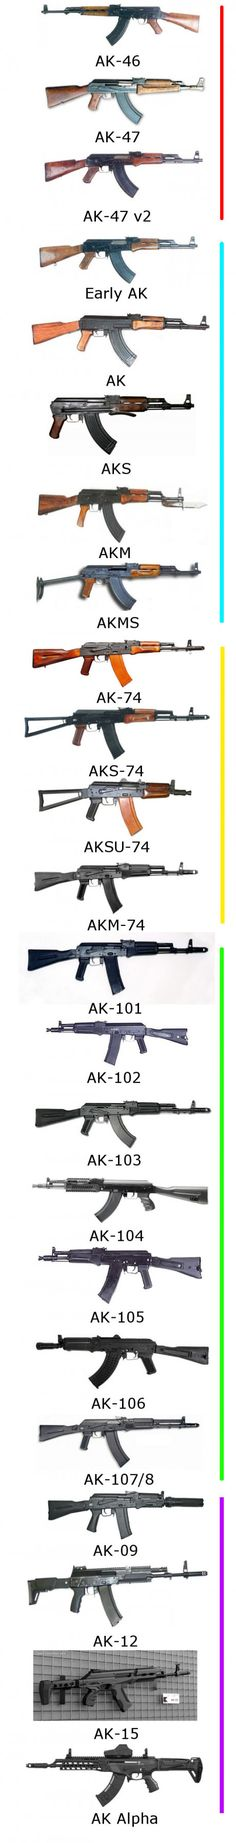 "Not only ""AK-47"" ...there's soo many more to blame!!! Buy 'em now before Hillary makes it impossible to!"